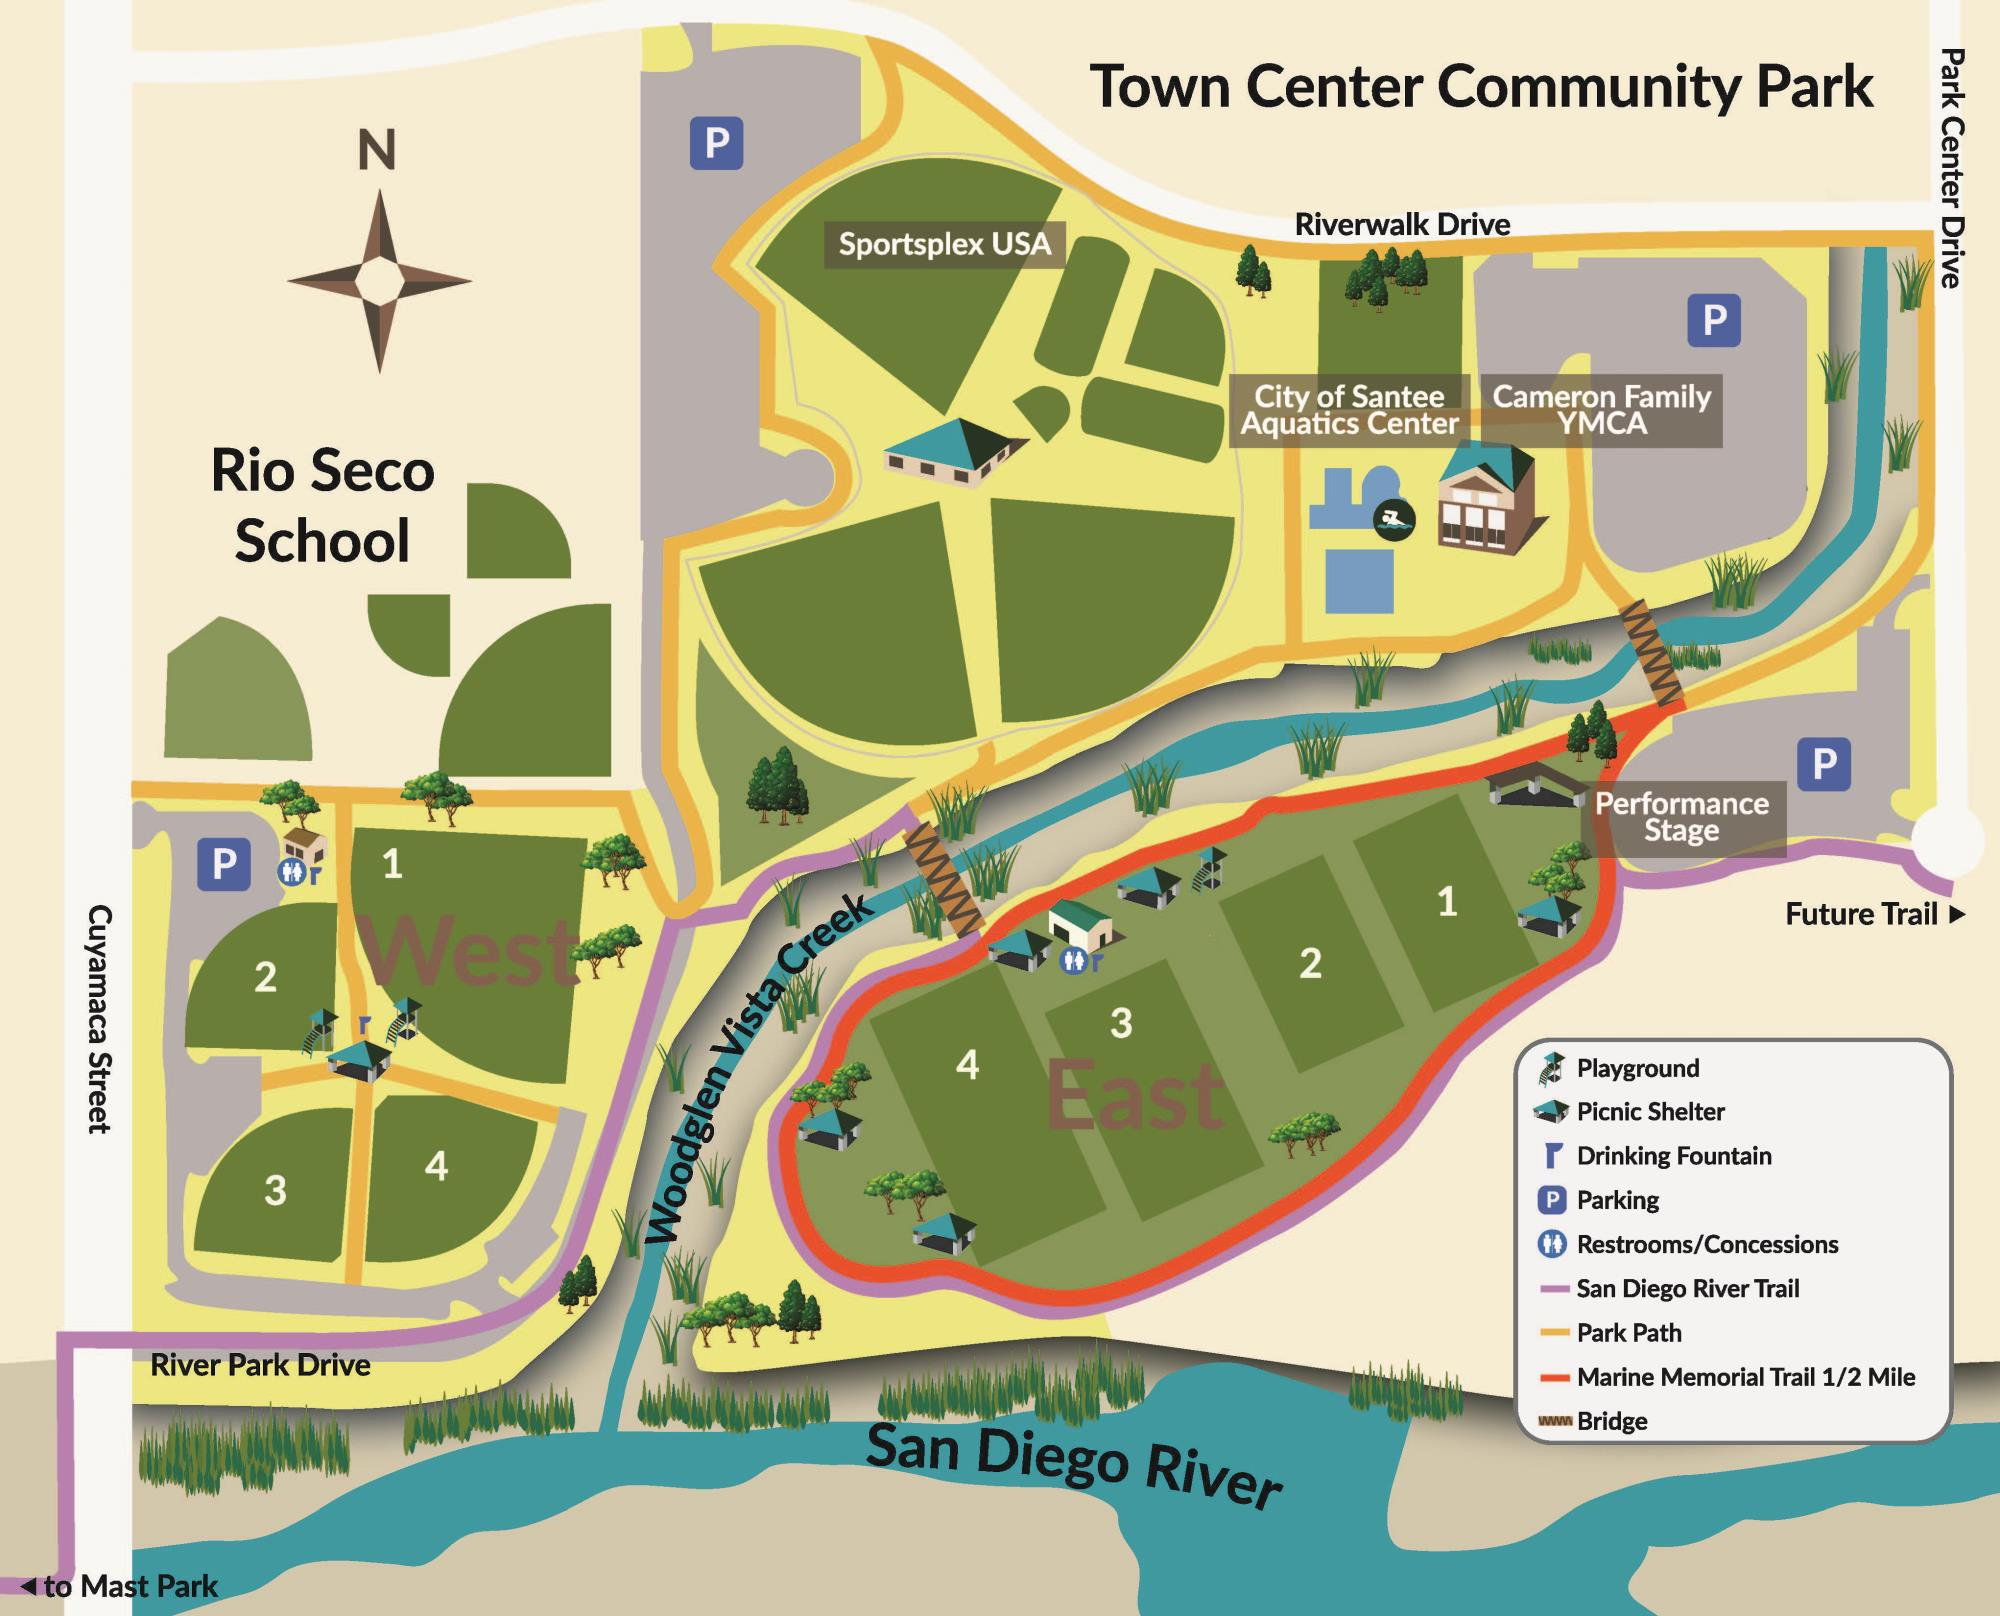 Town Center Community Park | Santee, CA